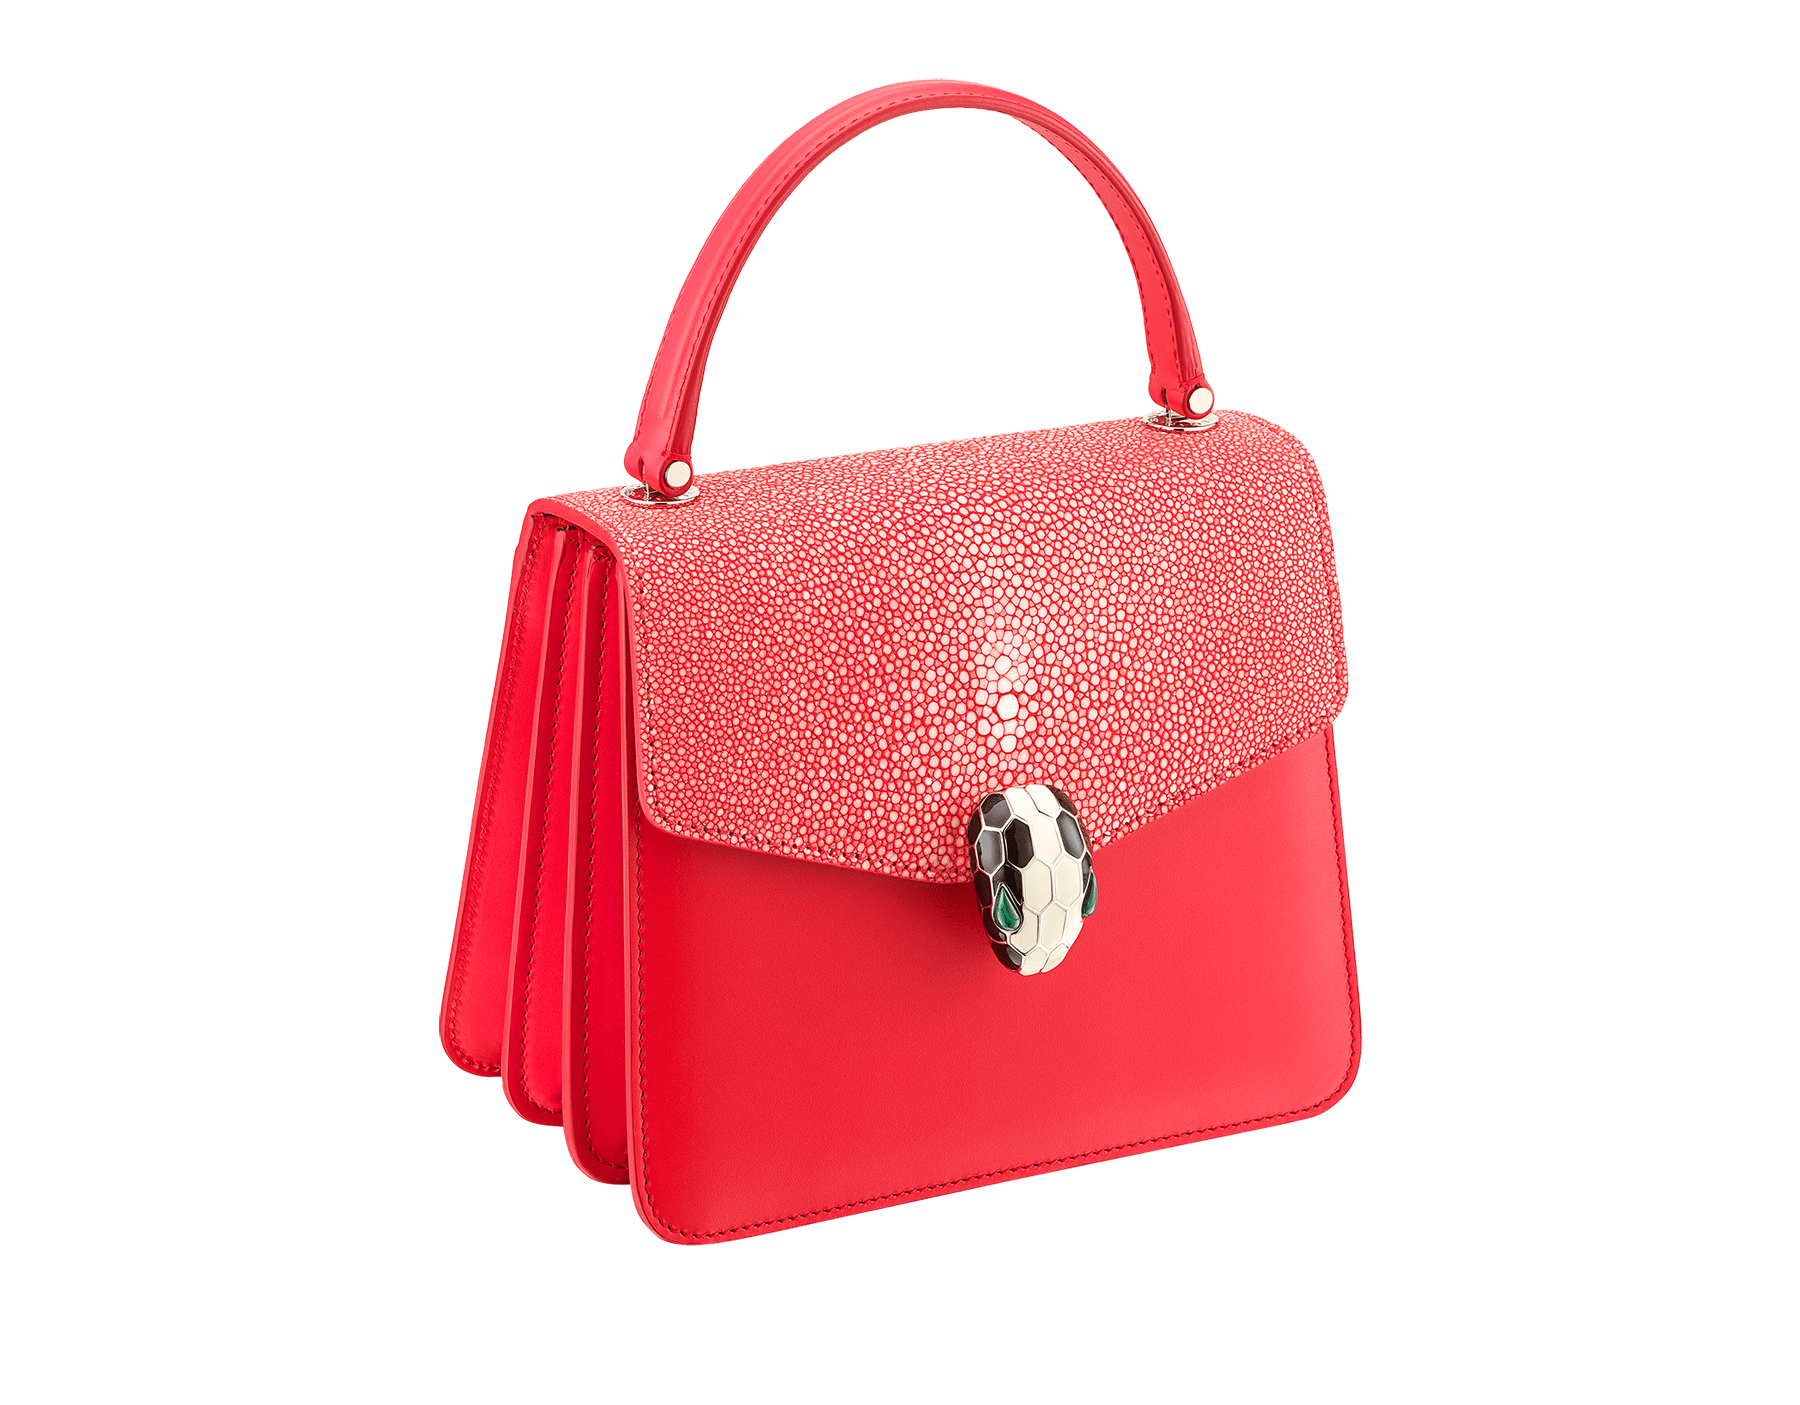 Serpenti Forever crossbody bag in sea star coral galuchat skin and smooth calf leather. Snakehead closure in light gold plated brass decorated with black and white enamel, and green malachite eyes. 287977 image 2